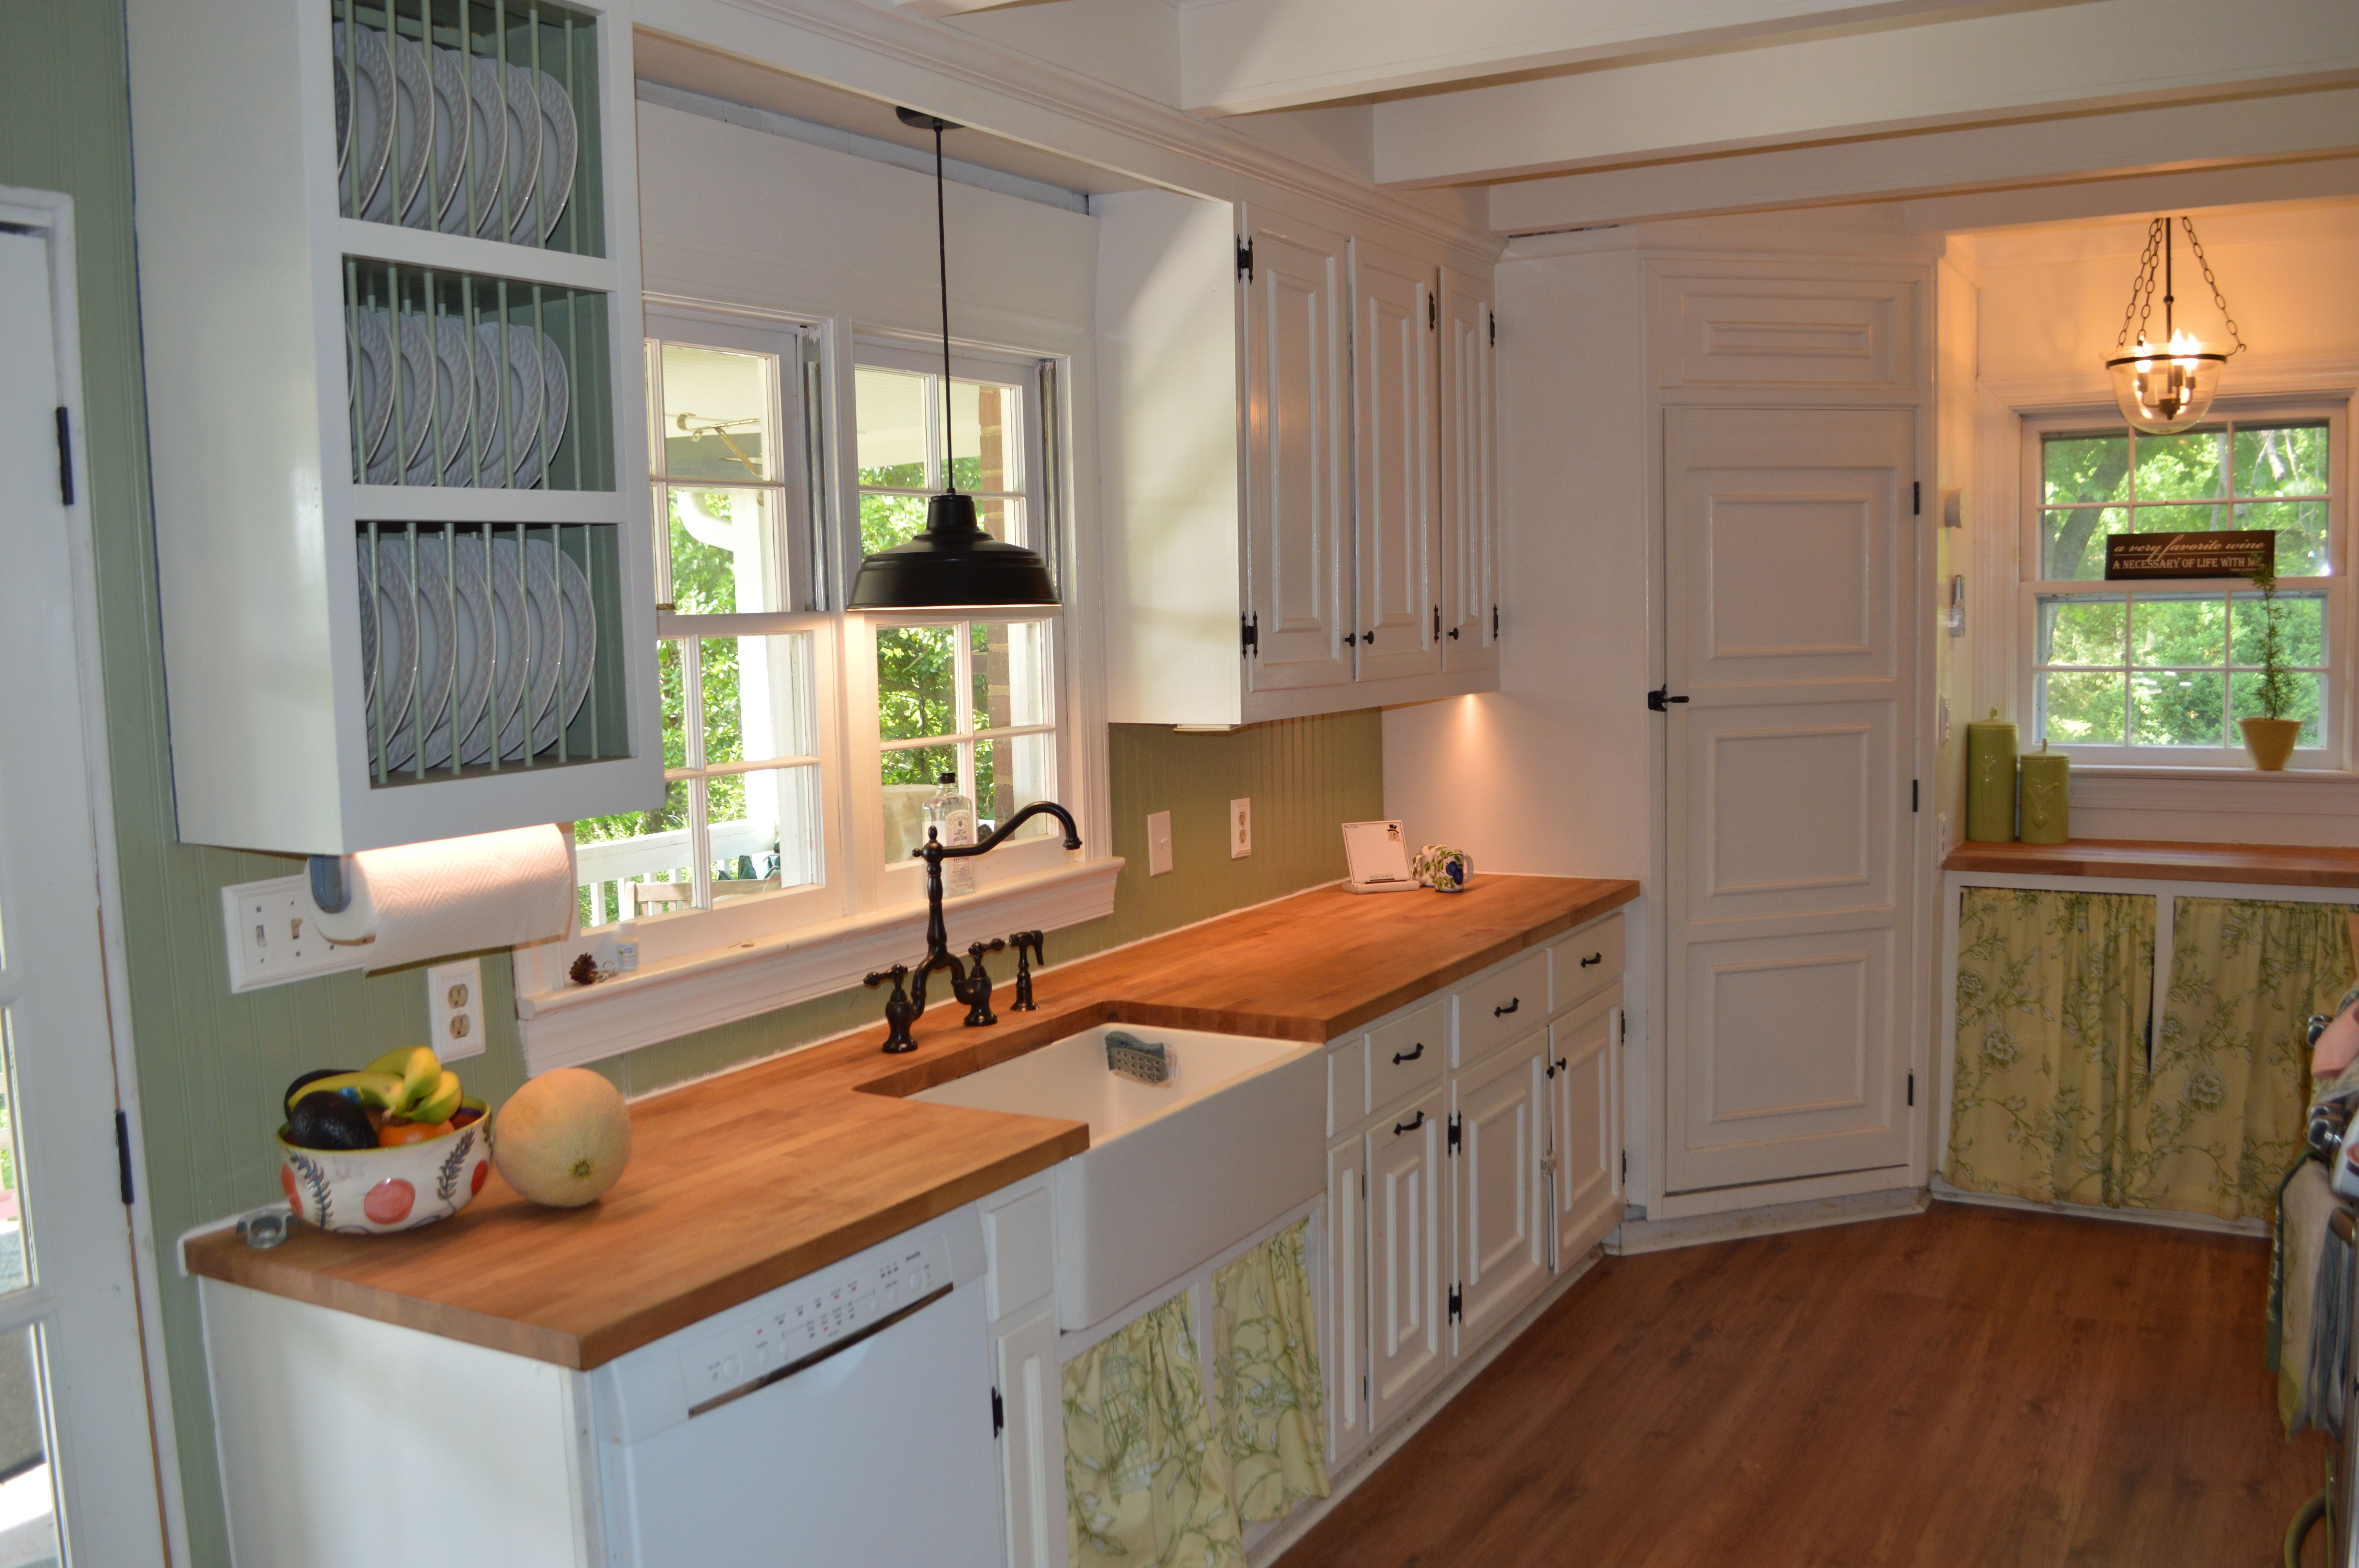 Finished Kitchen Remodel Yes Please A Farmhouse Reborn In 2020 Kitchen Remodel Remodel Home Kitchens